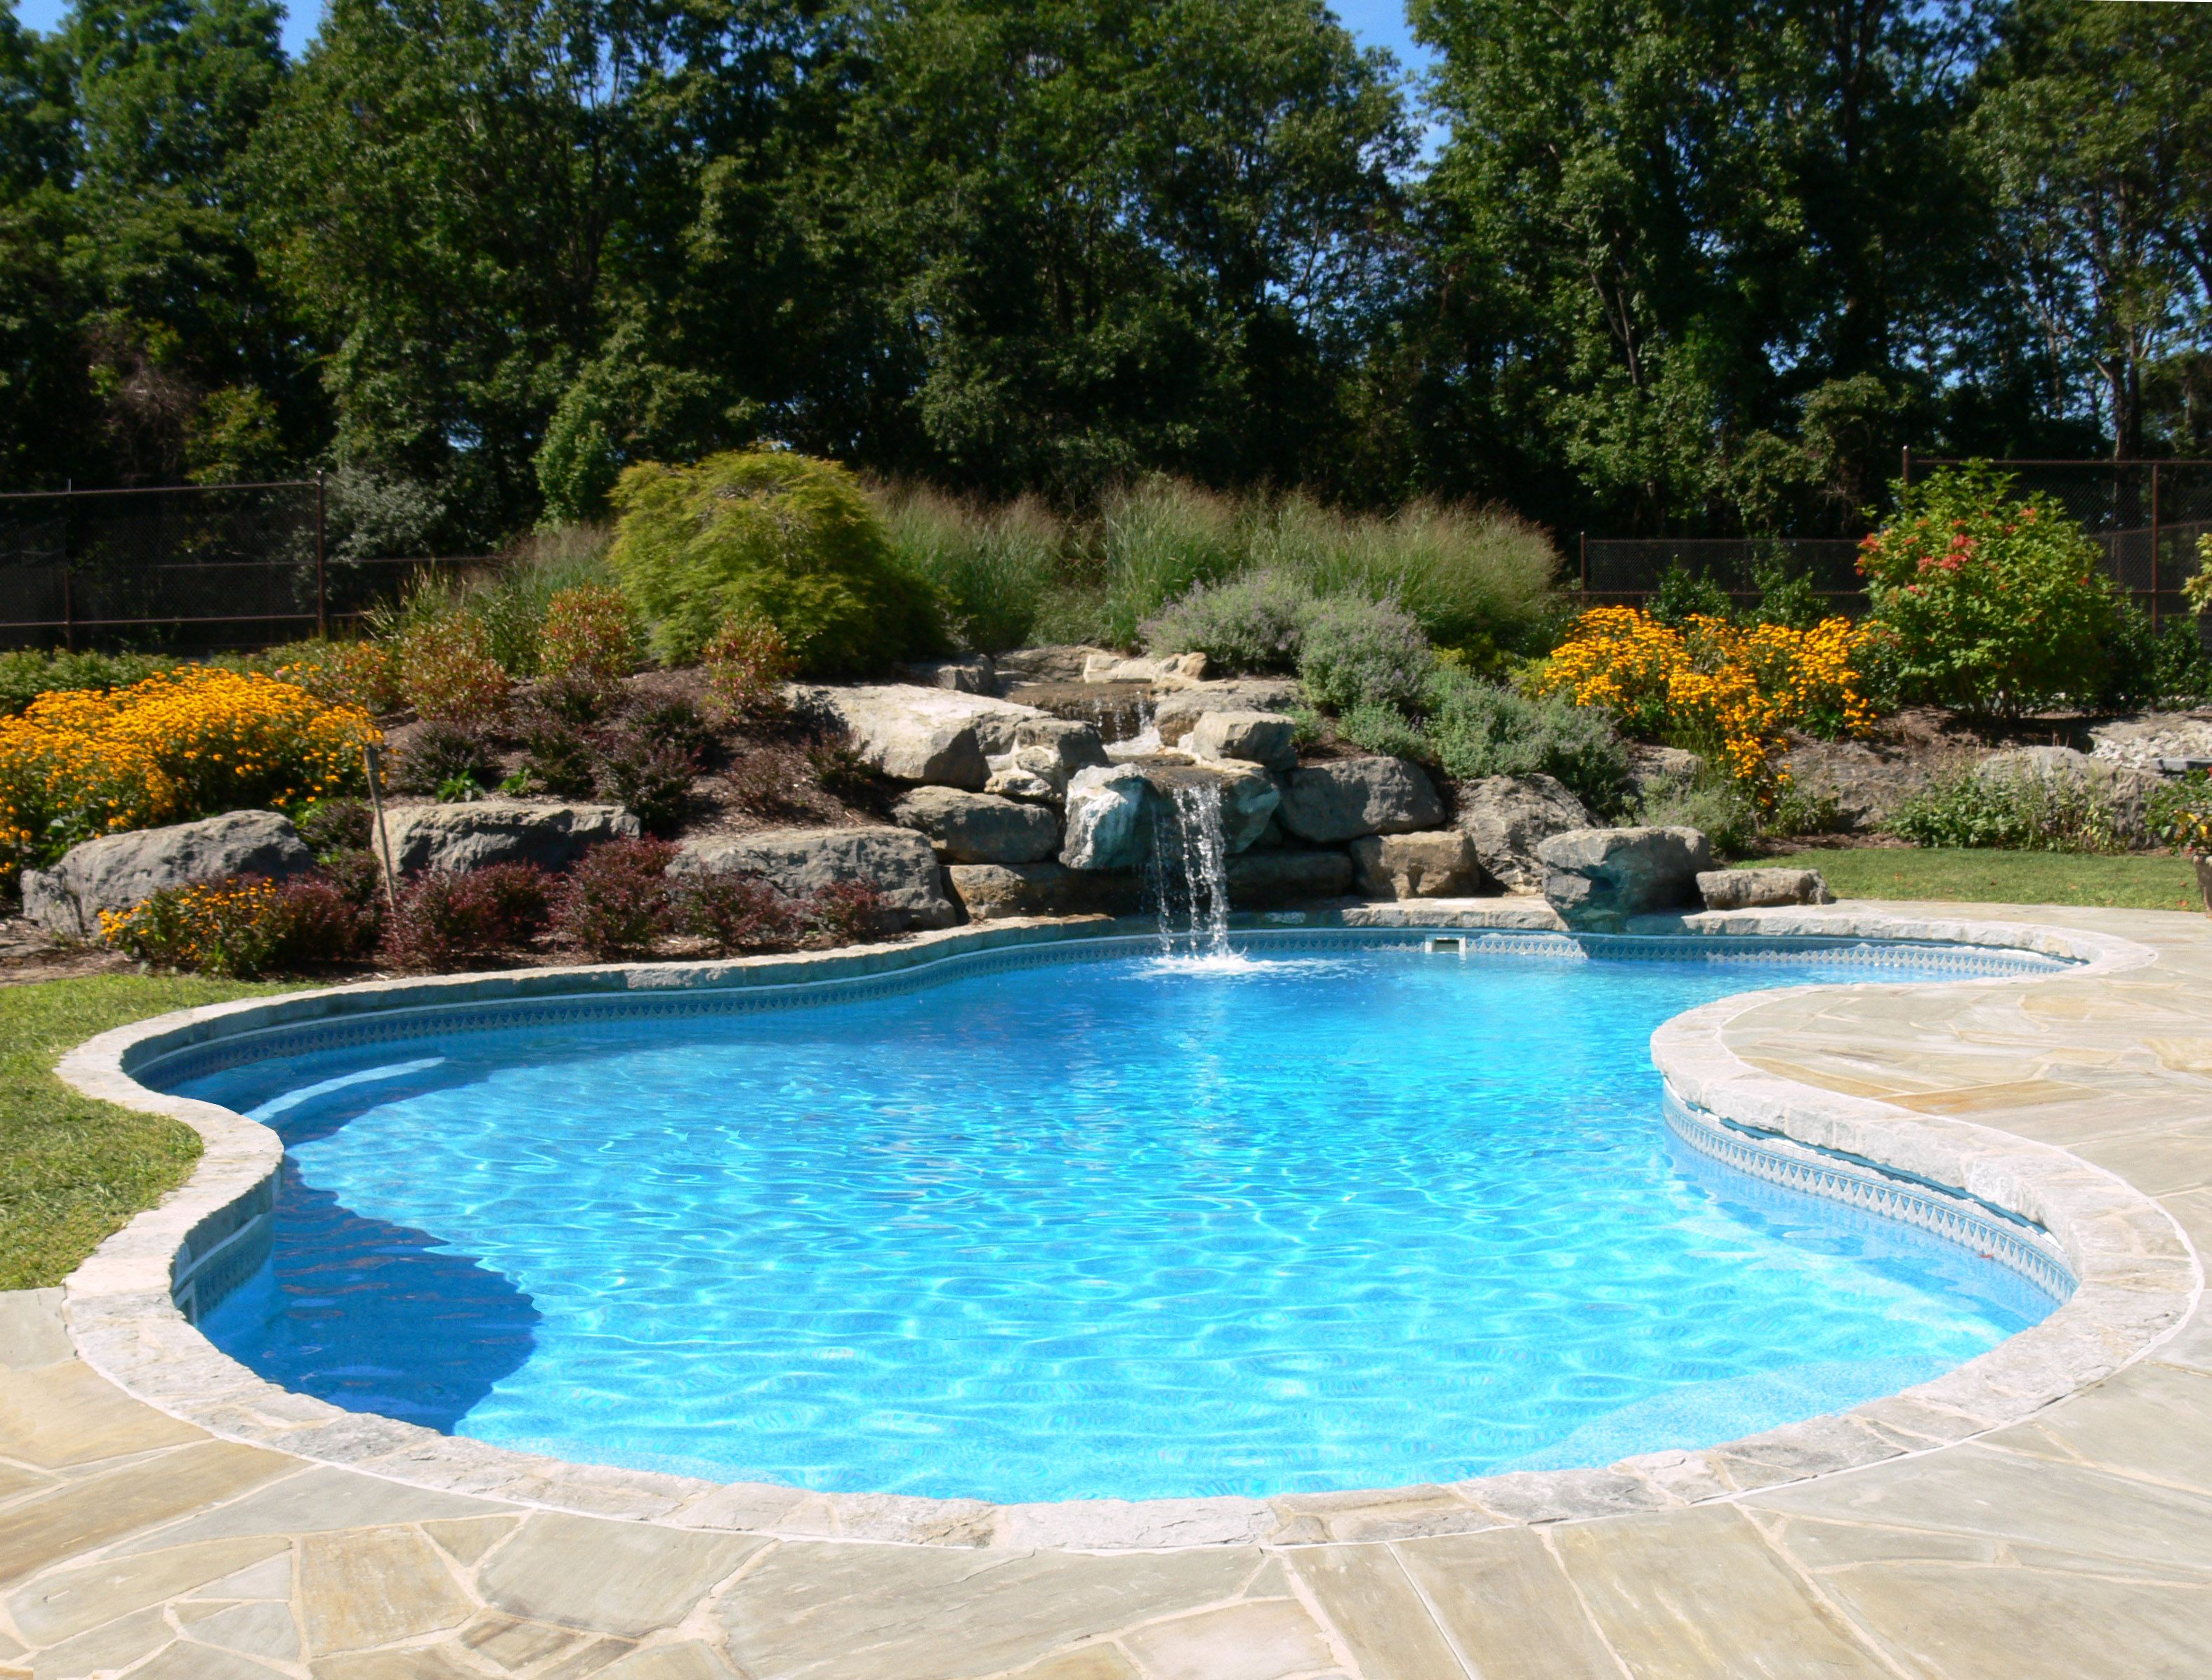 Lagoon pool kits from pool warehouse pool kits for Pictures of backyard pools